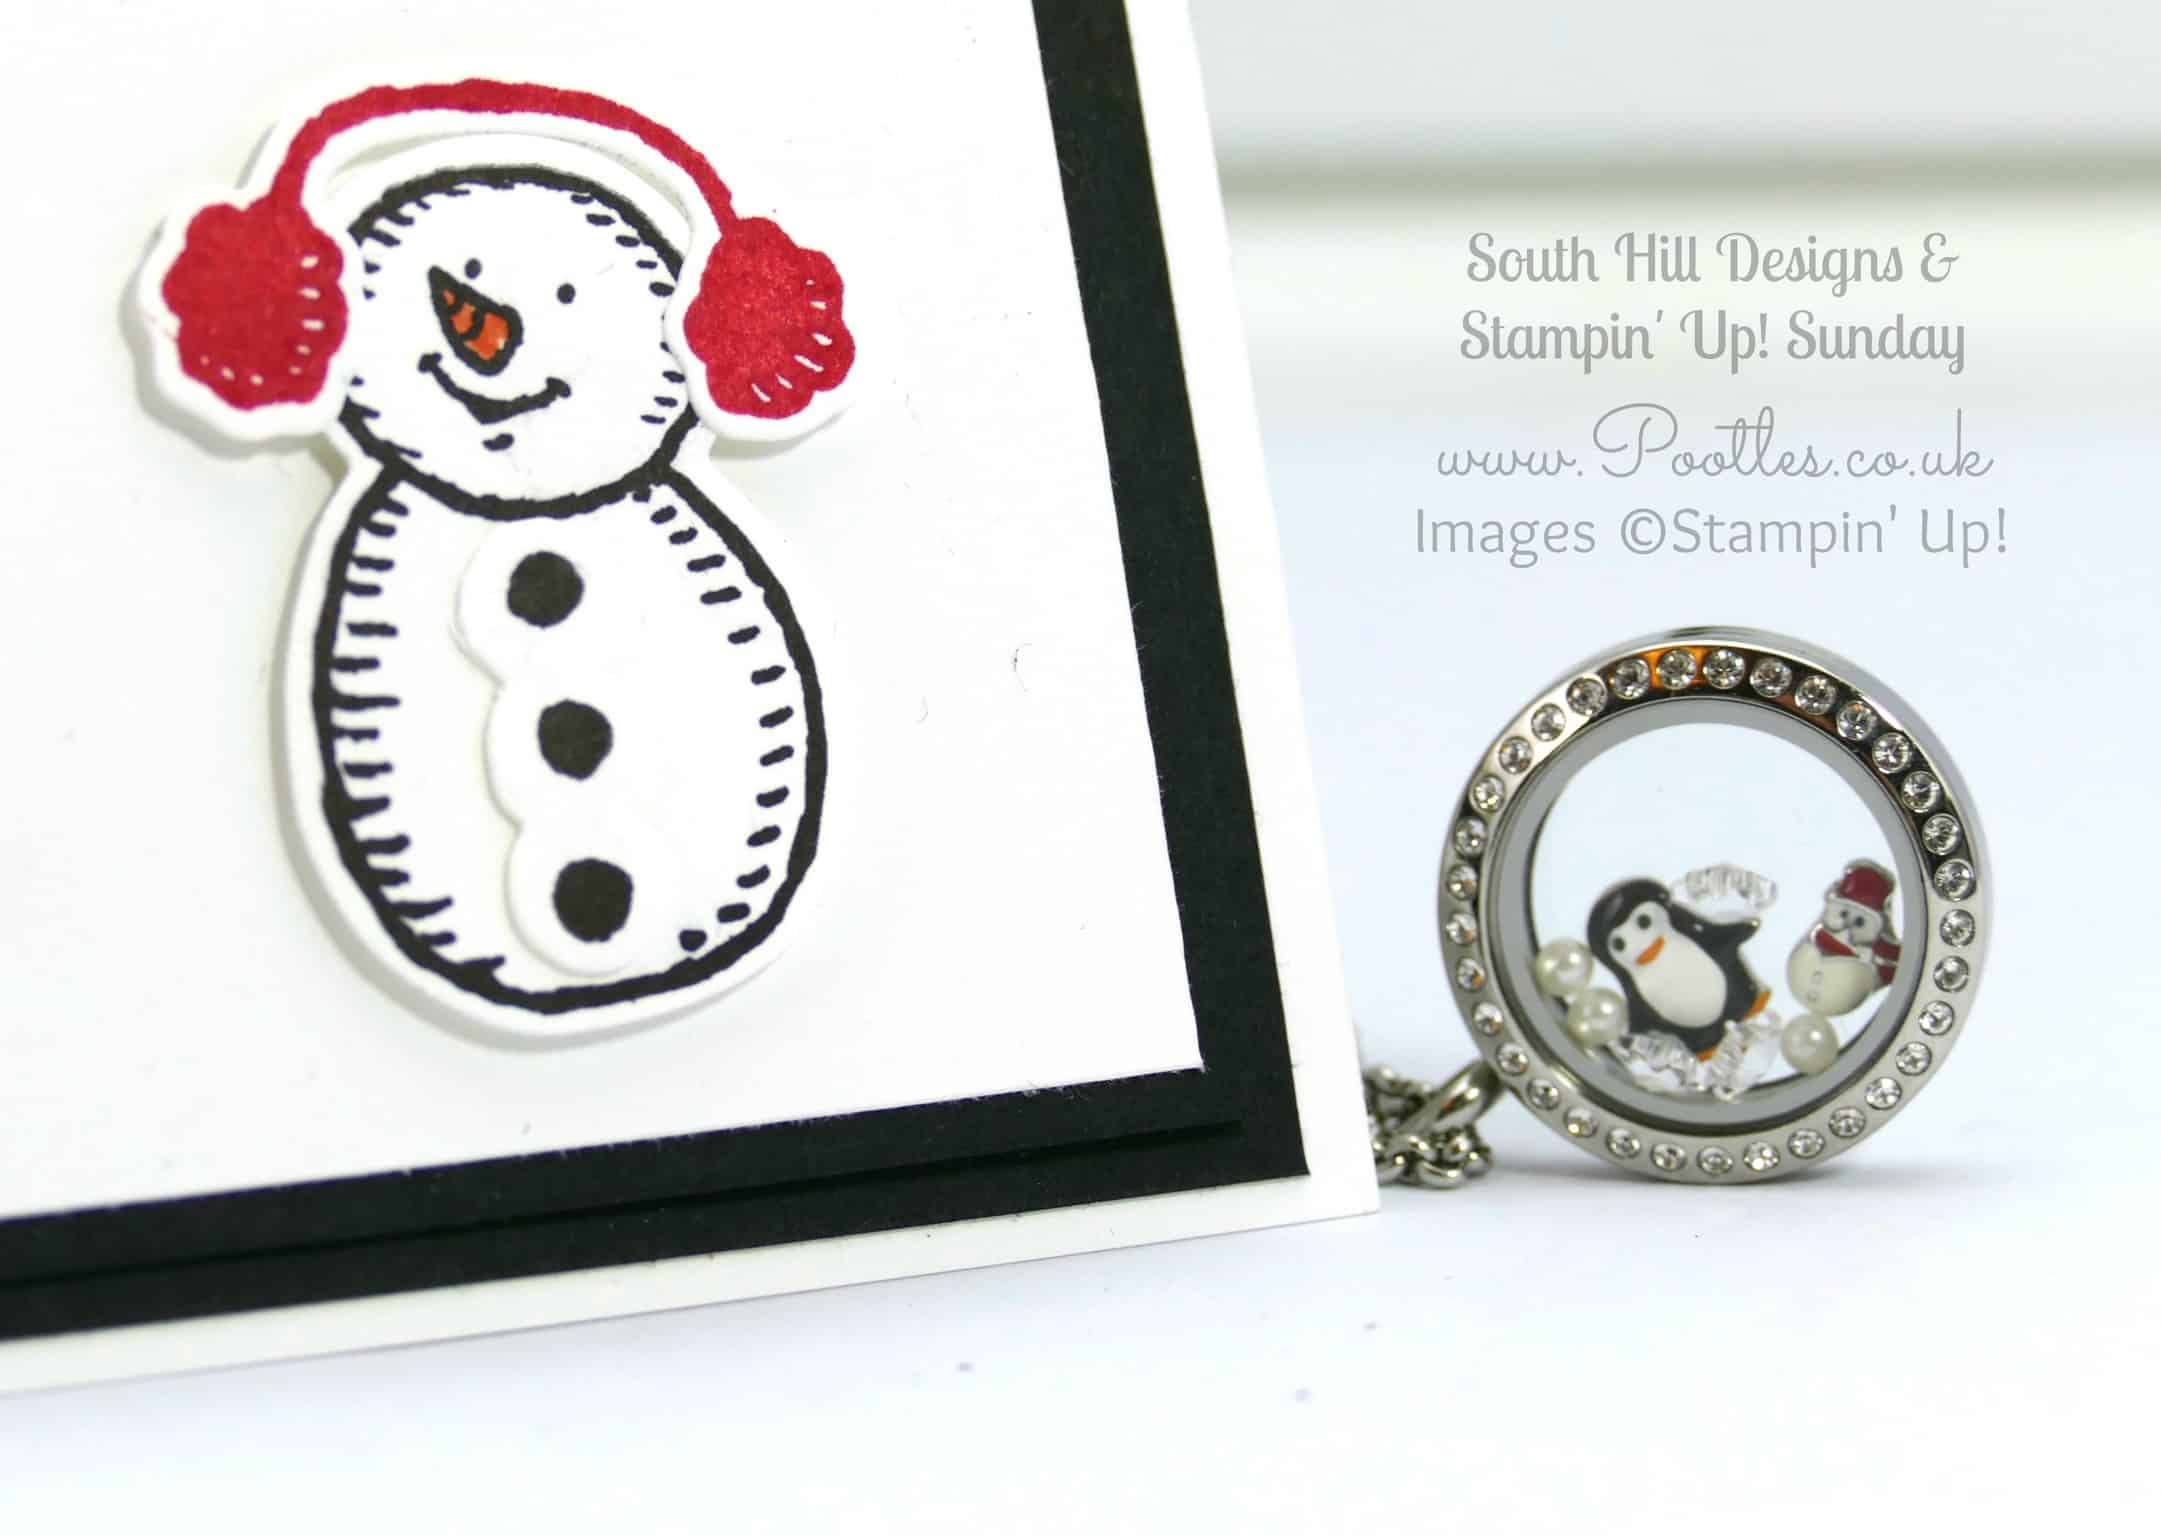 South Hill Designs & Stampin' Up! Sunday Penguins & Snowmen Card & Locket